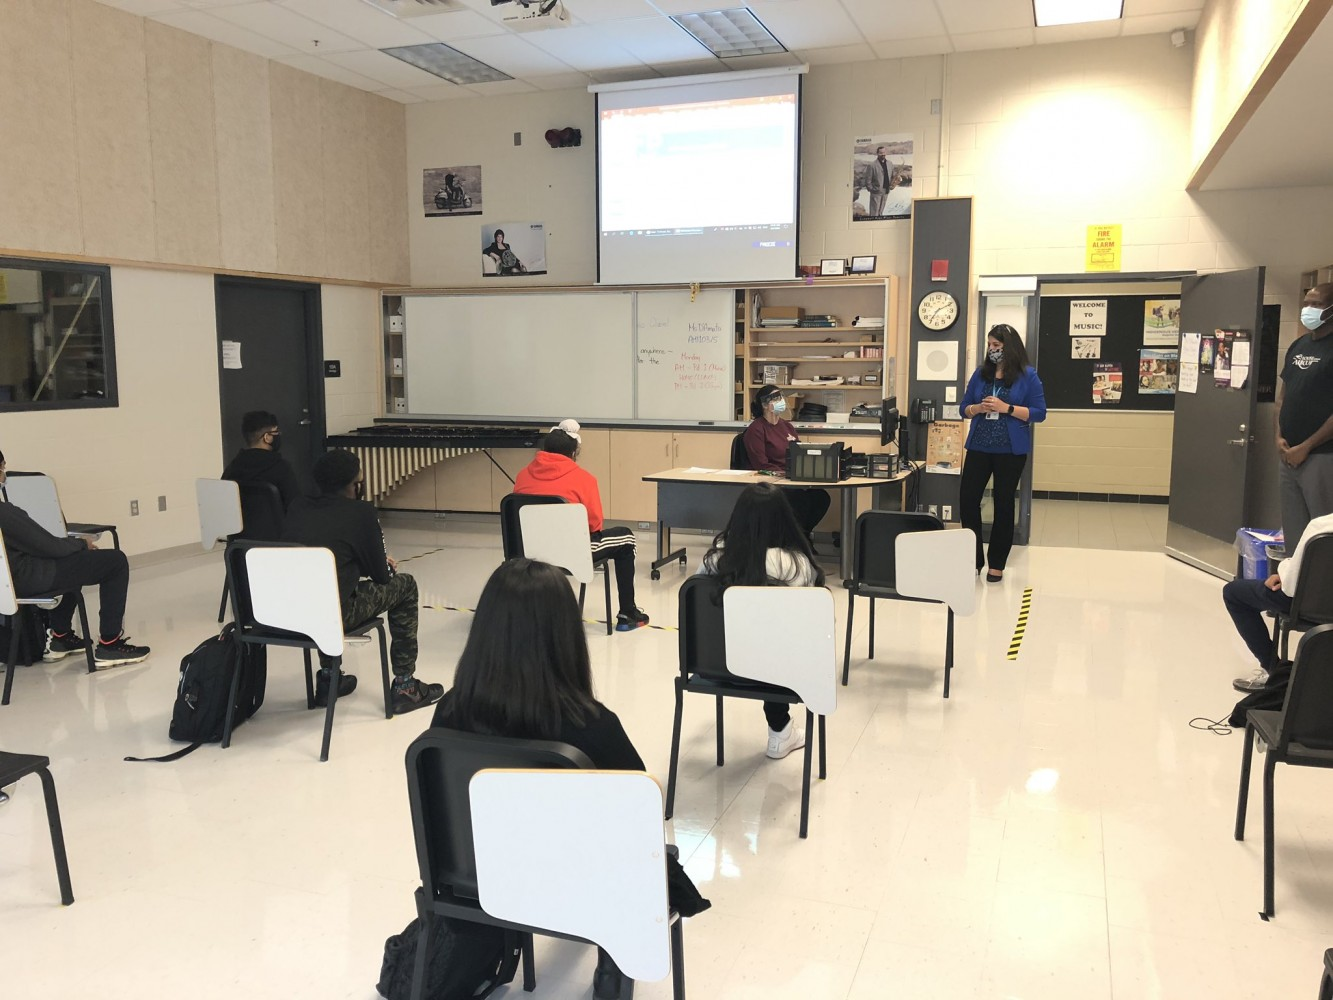 Concern over lack of COVID-19 protocols, cases in Peel schools as first day gets off to rocky start